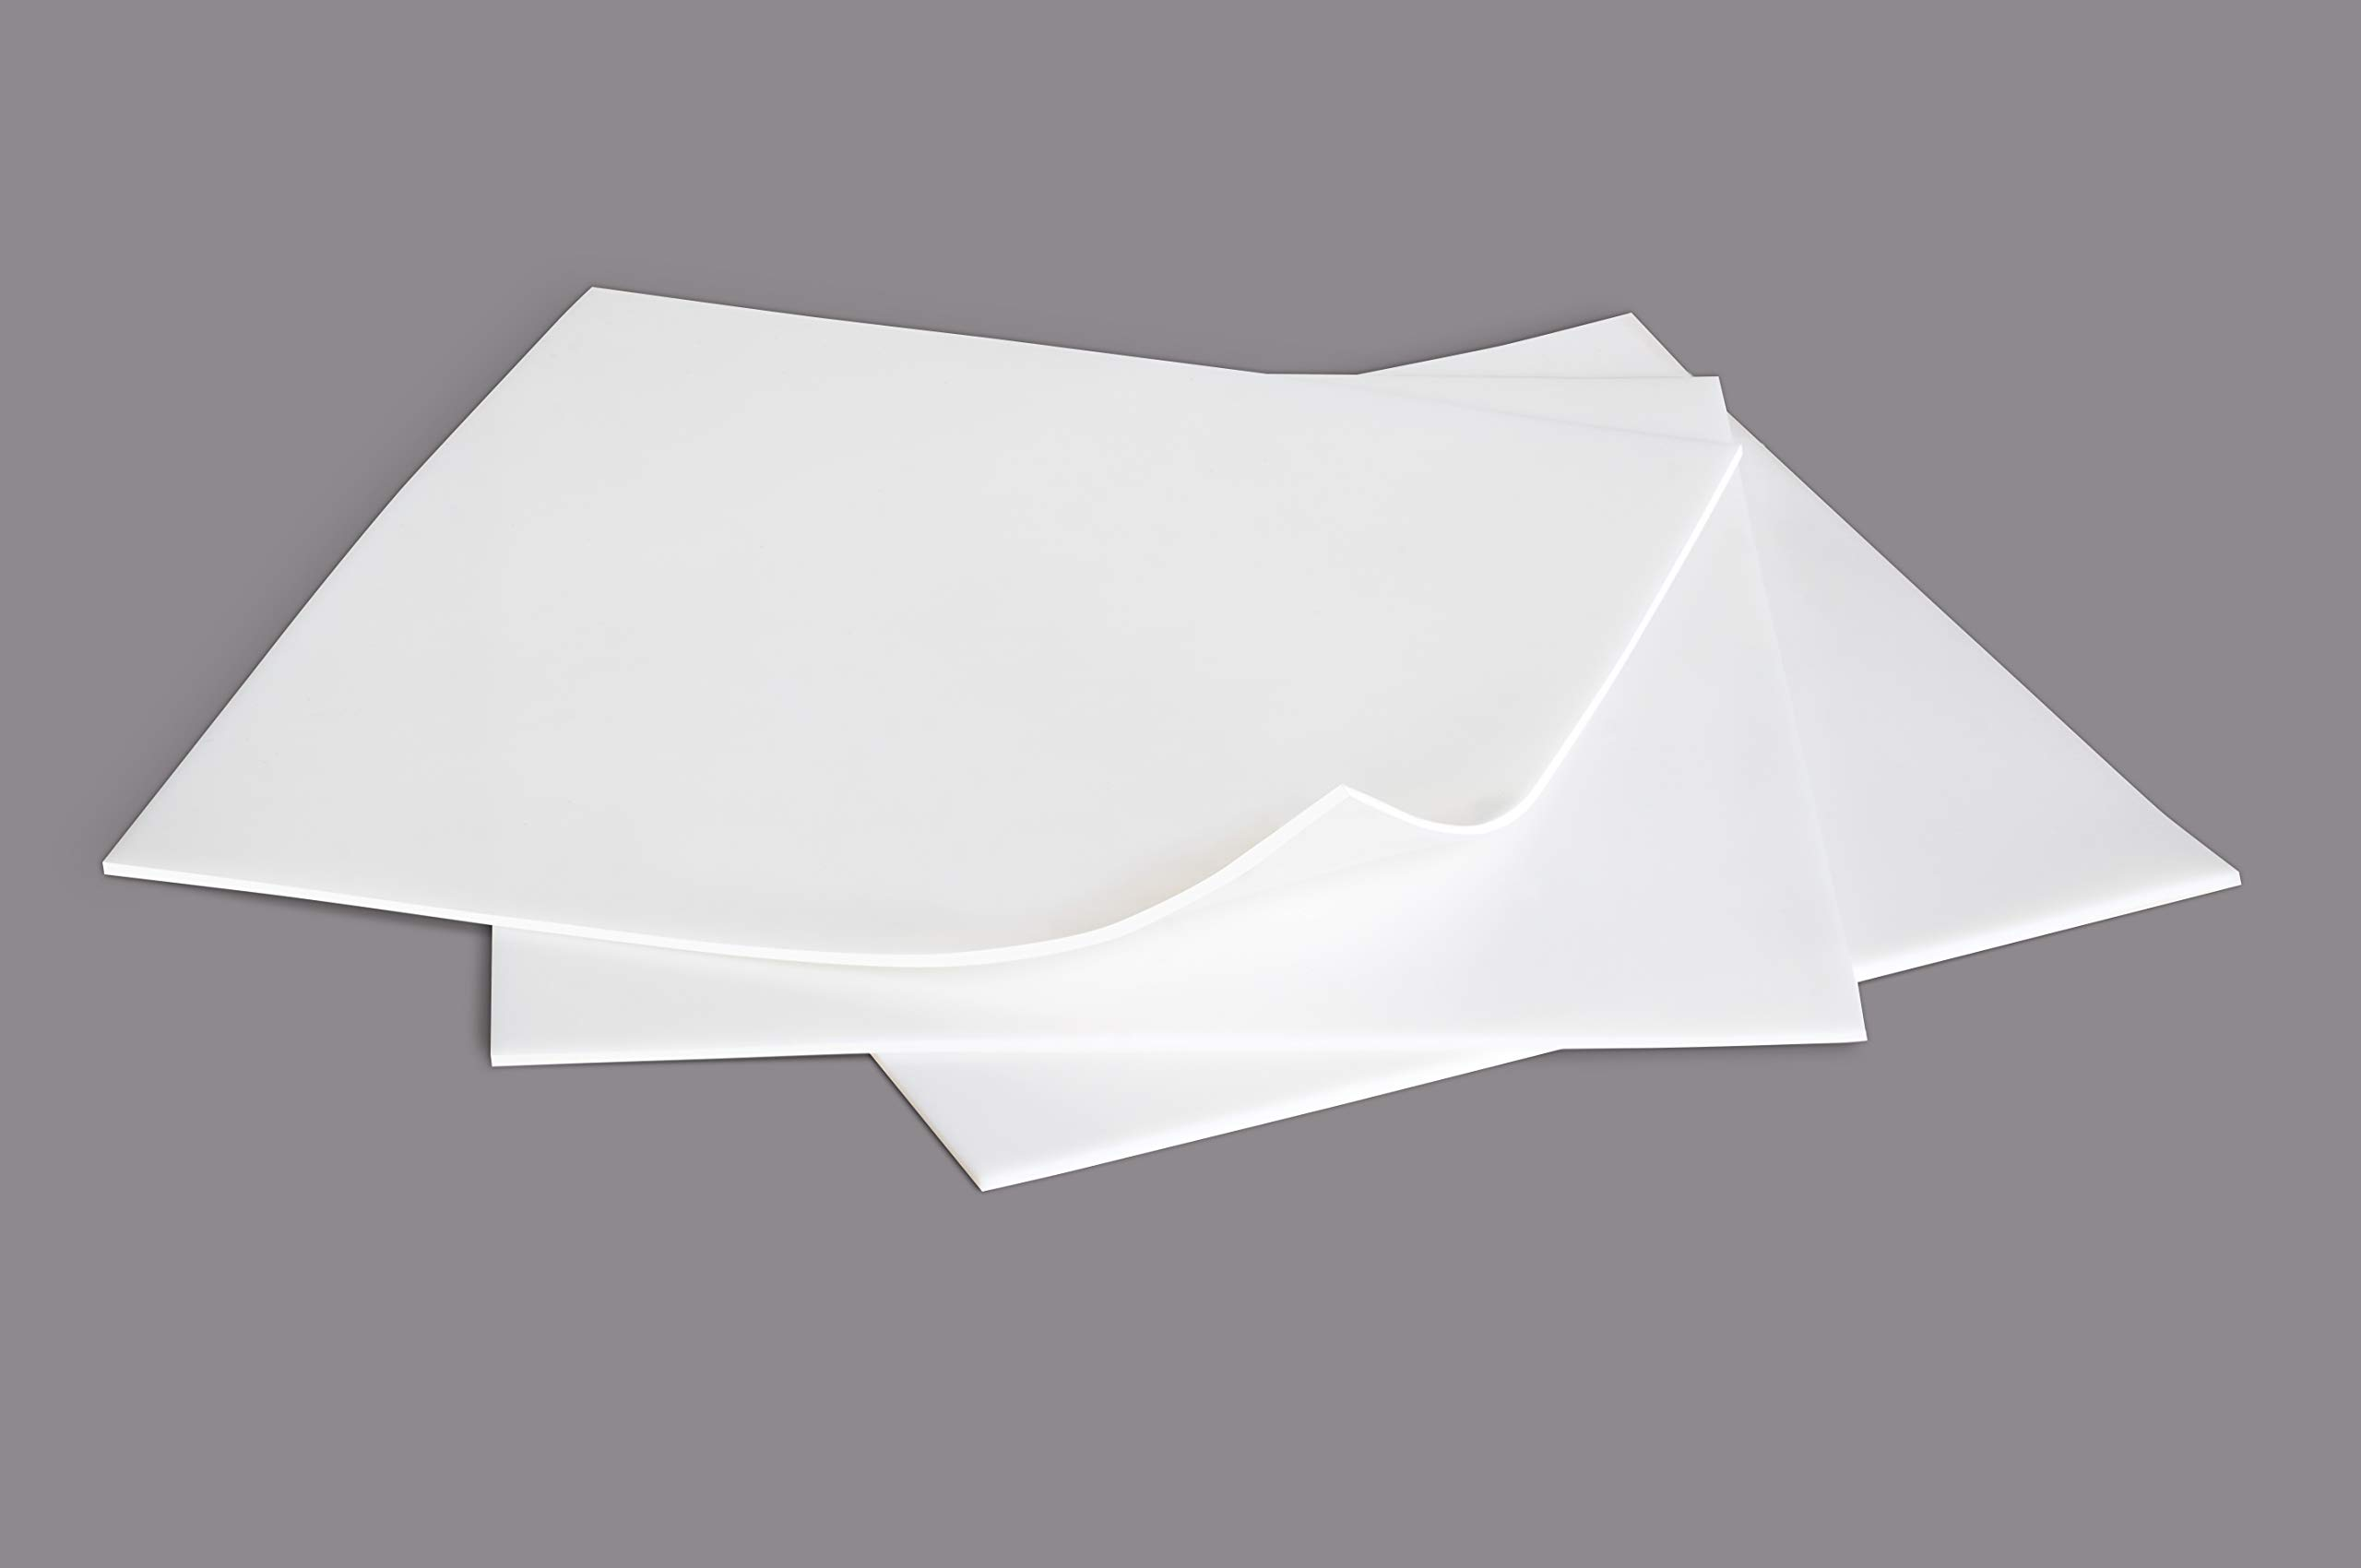 Food Grade Silicone Rubber Sheet 6x6-inch by 1/16 White [3-pack] Duro Shore A65 High Temperature Heavy Duty for Gaskets DIY Food Covers Lids Sealing Material Supports Microwave Oven Protection